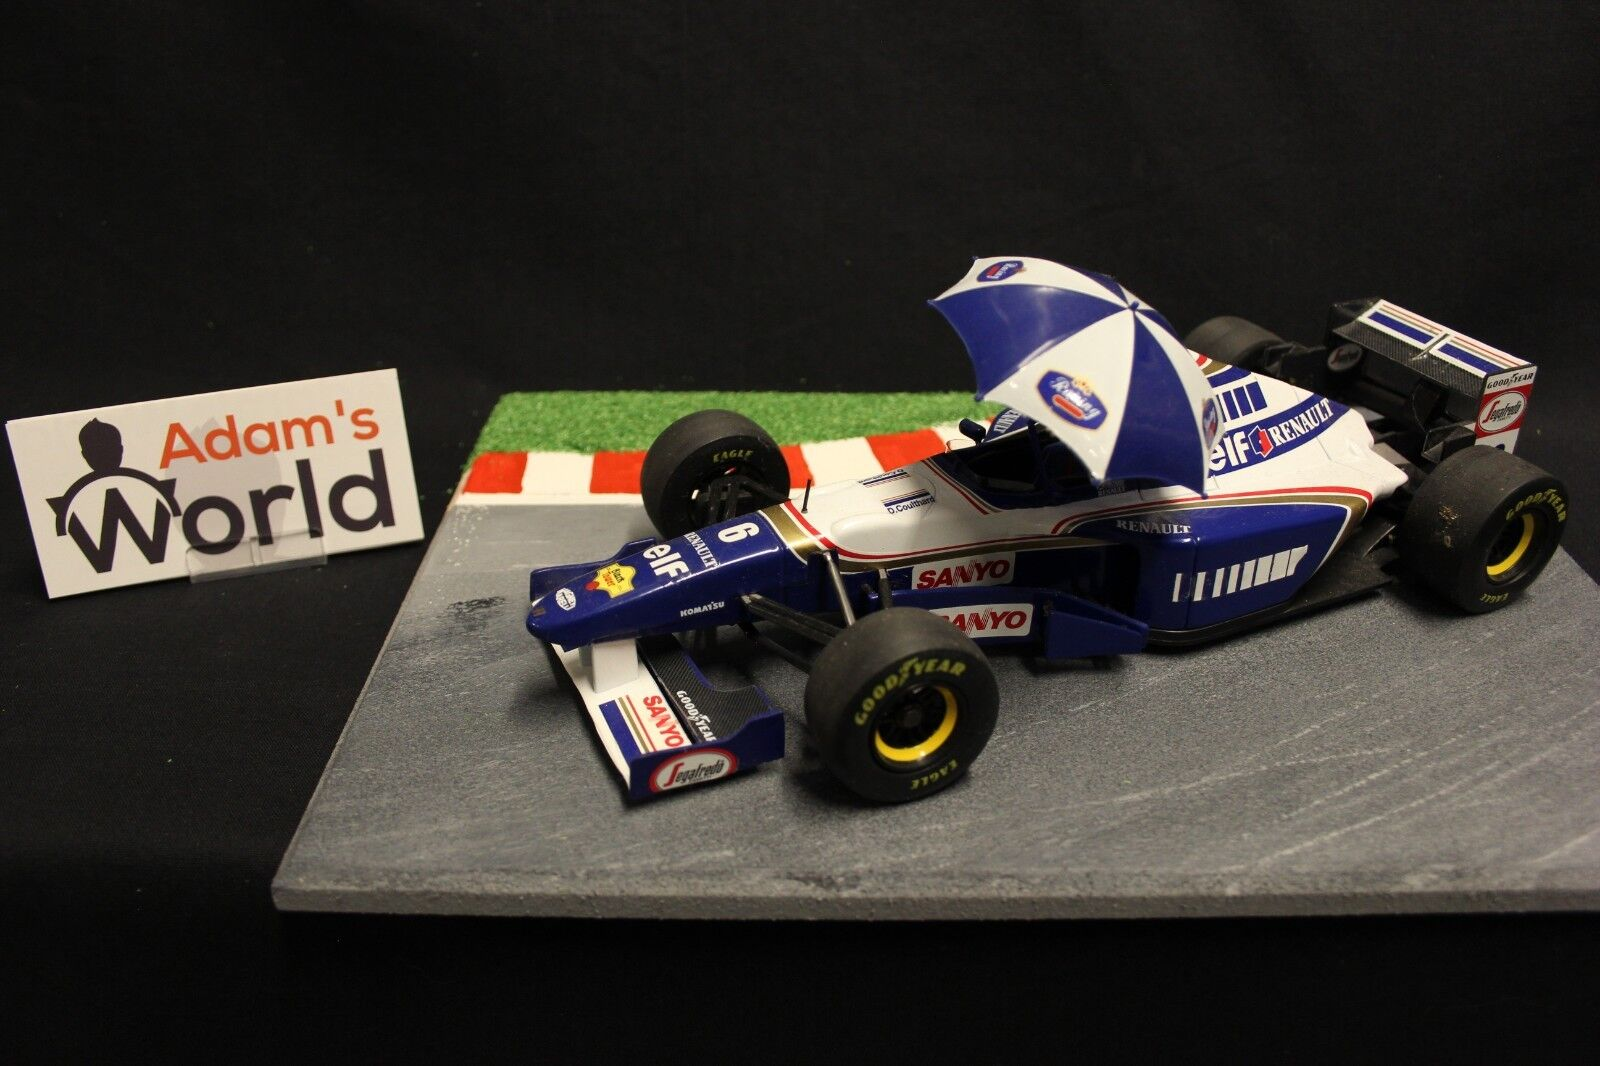 Onyx Williams Renault FW17 1995 1:18  6 David Coulthard  GBR   F1NB